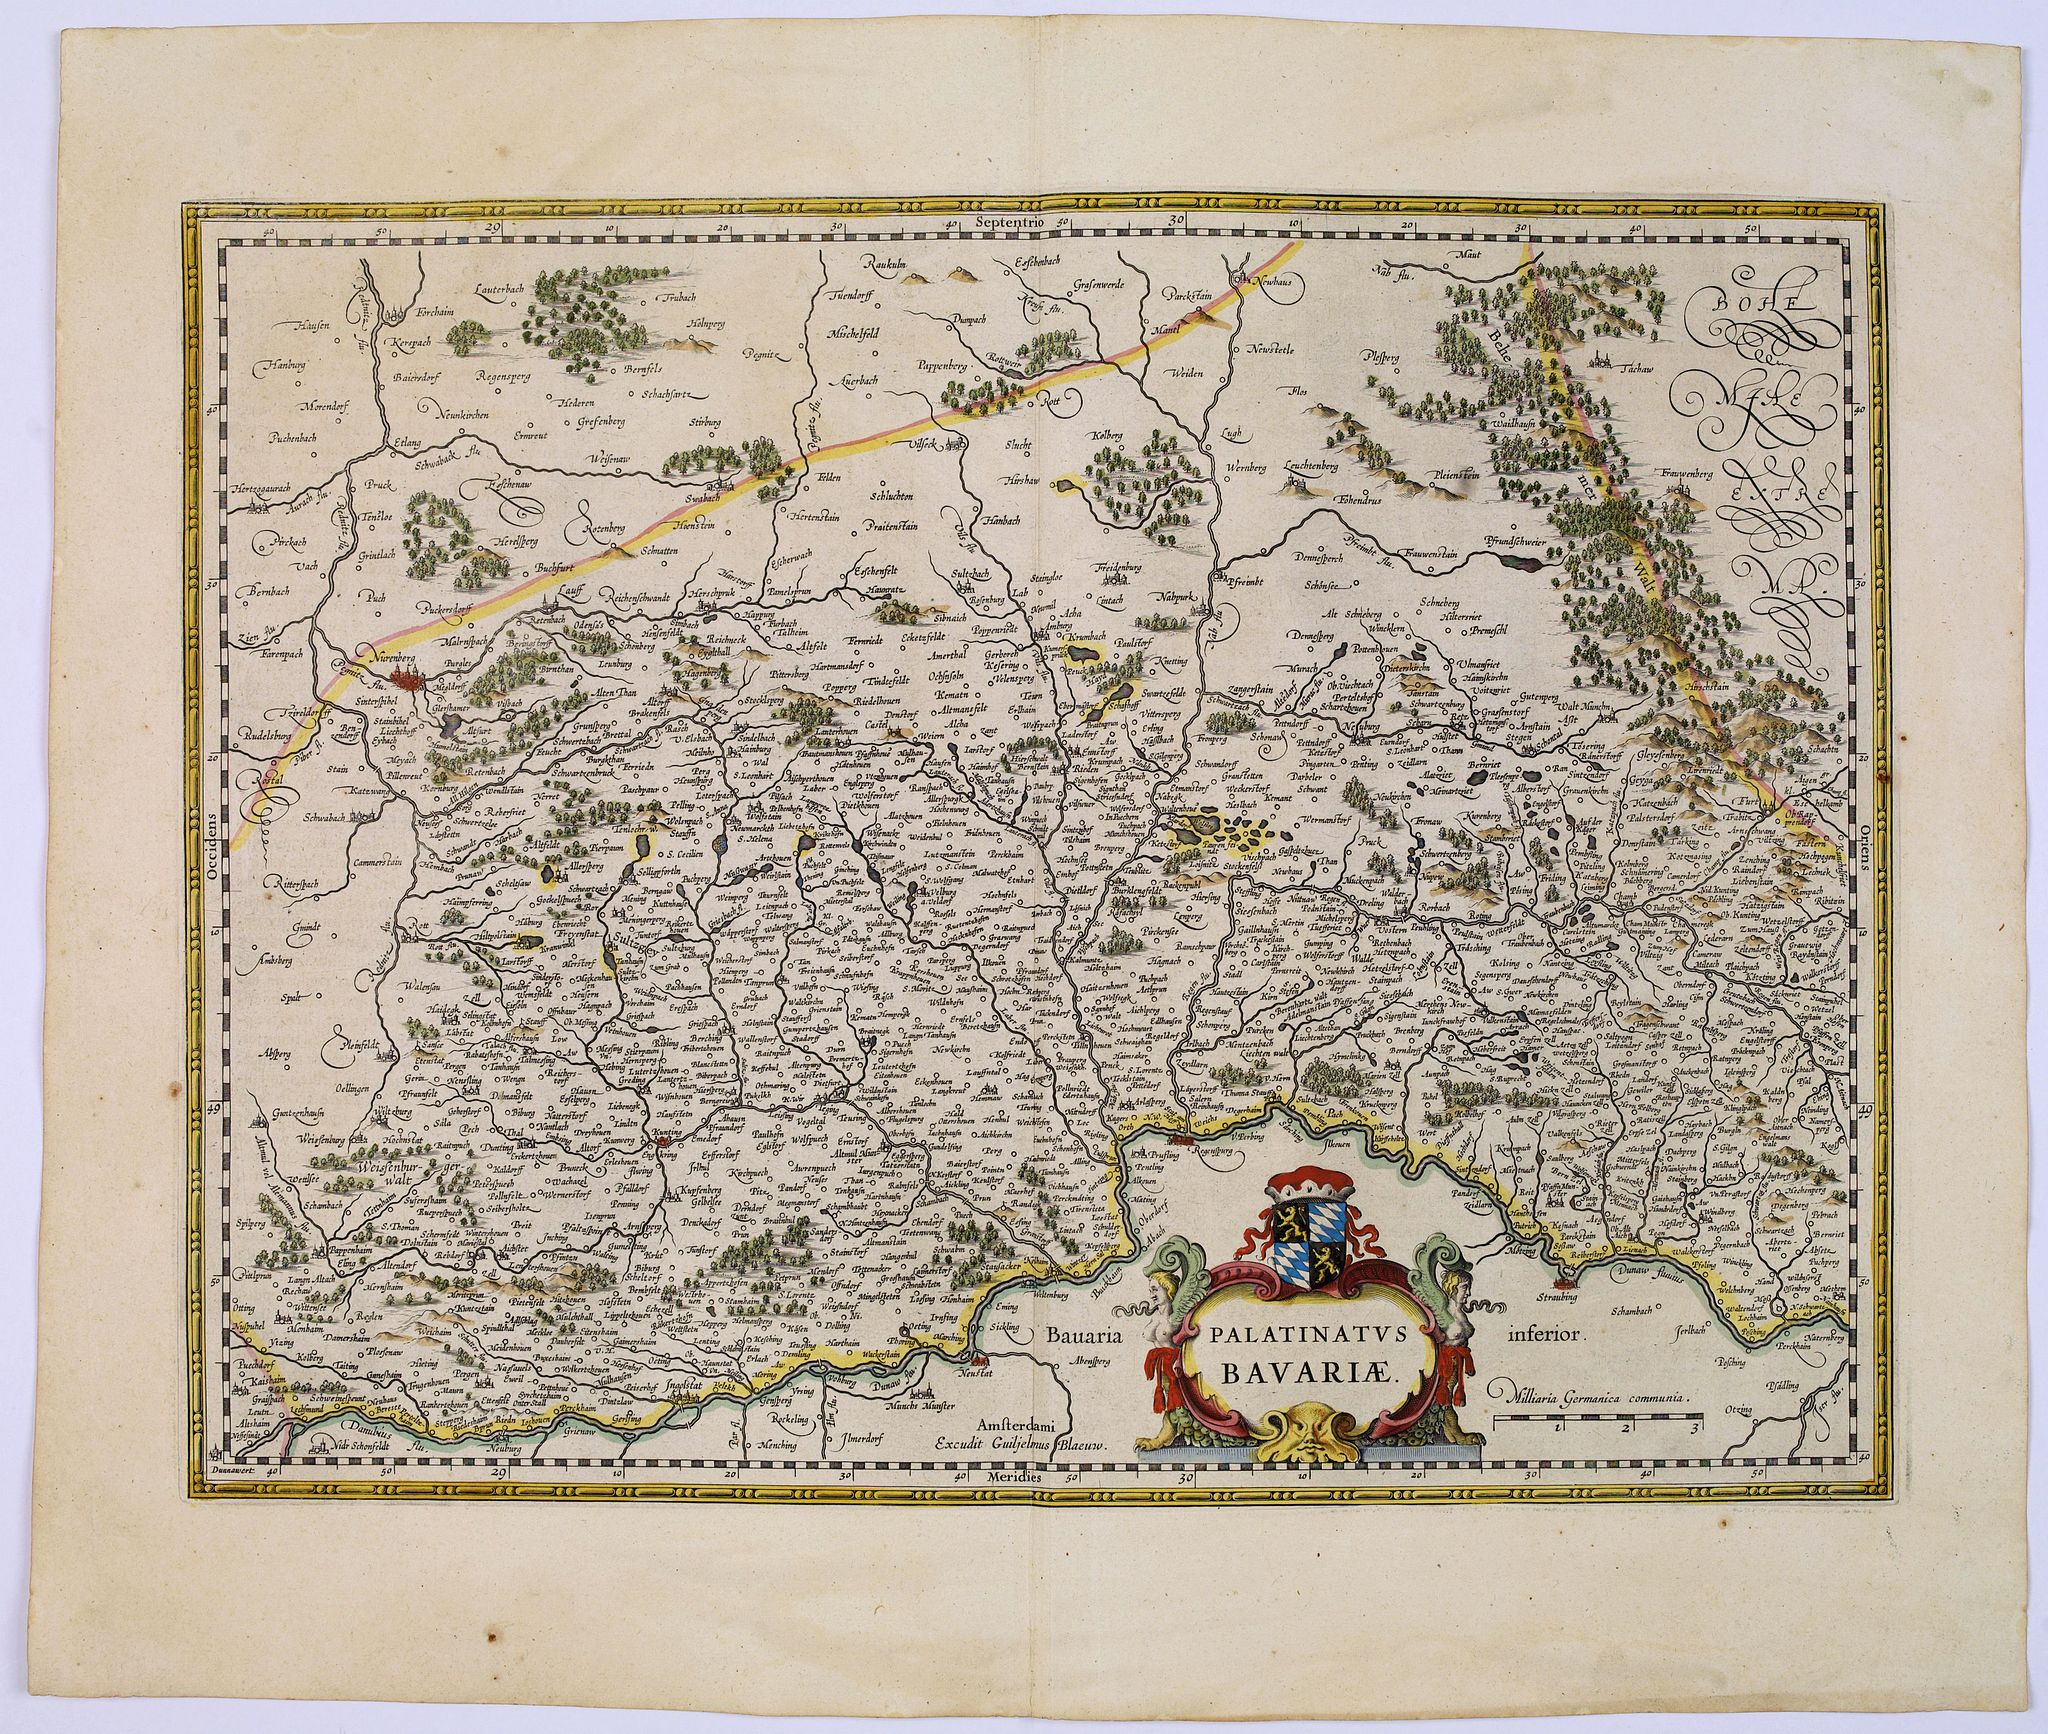 BLAEU, J.,  Palatinatus Bavariae., antique map, old maps